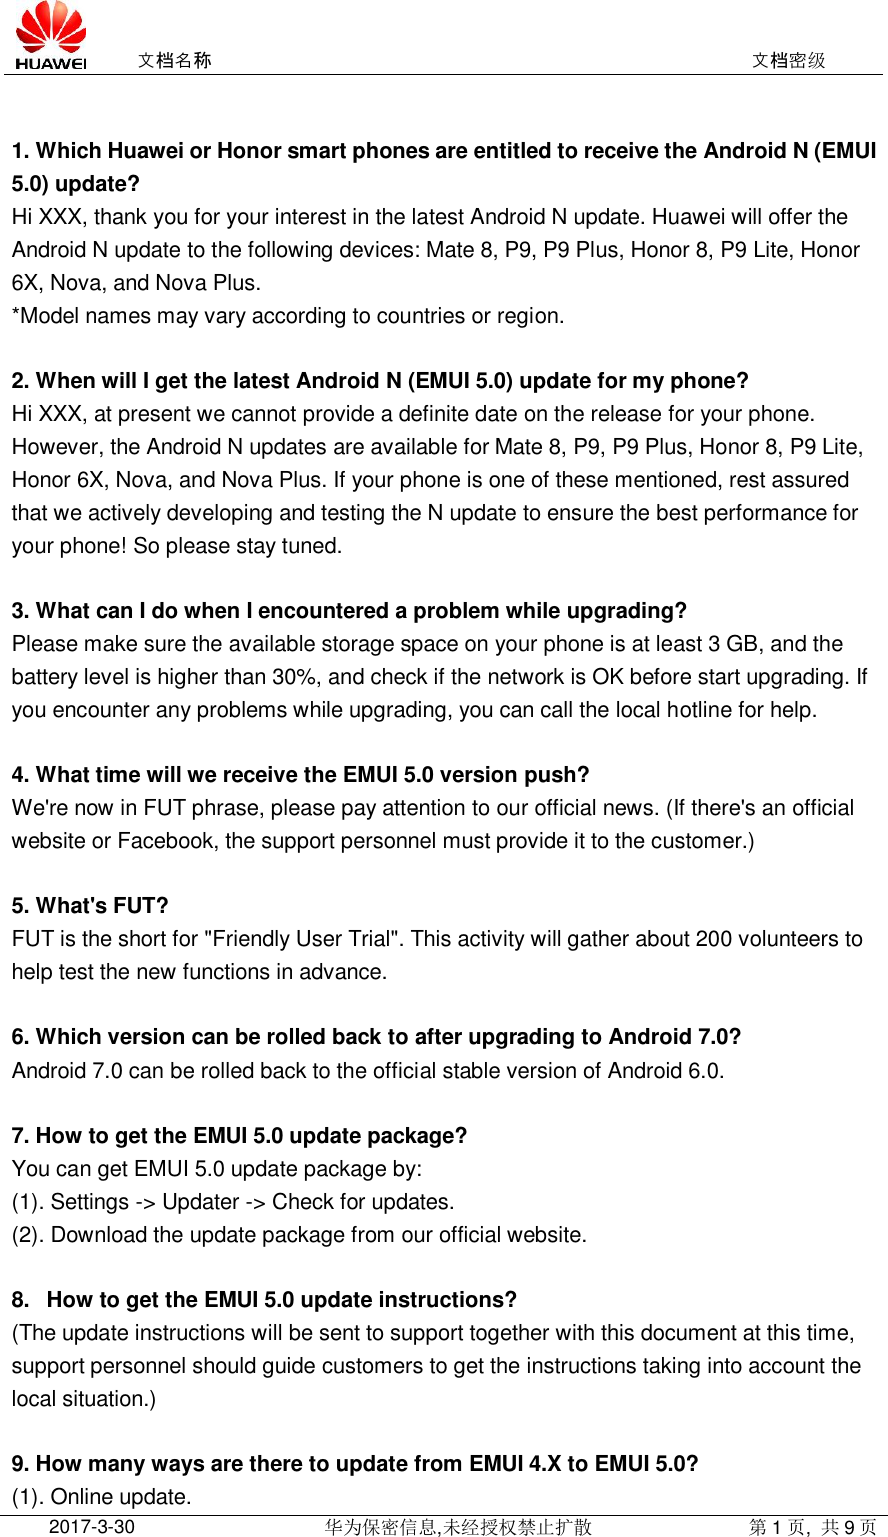 Huawei Android 7 0 Upgrade(Android N Update) Related FAQ